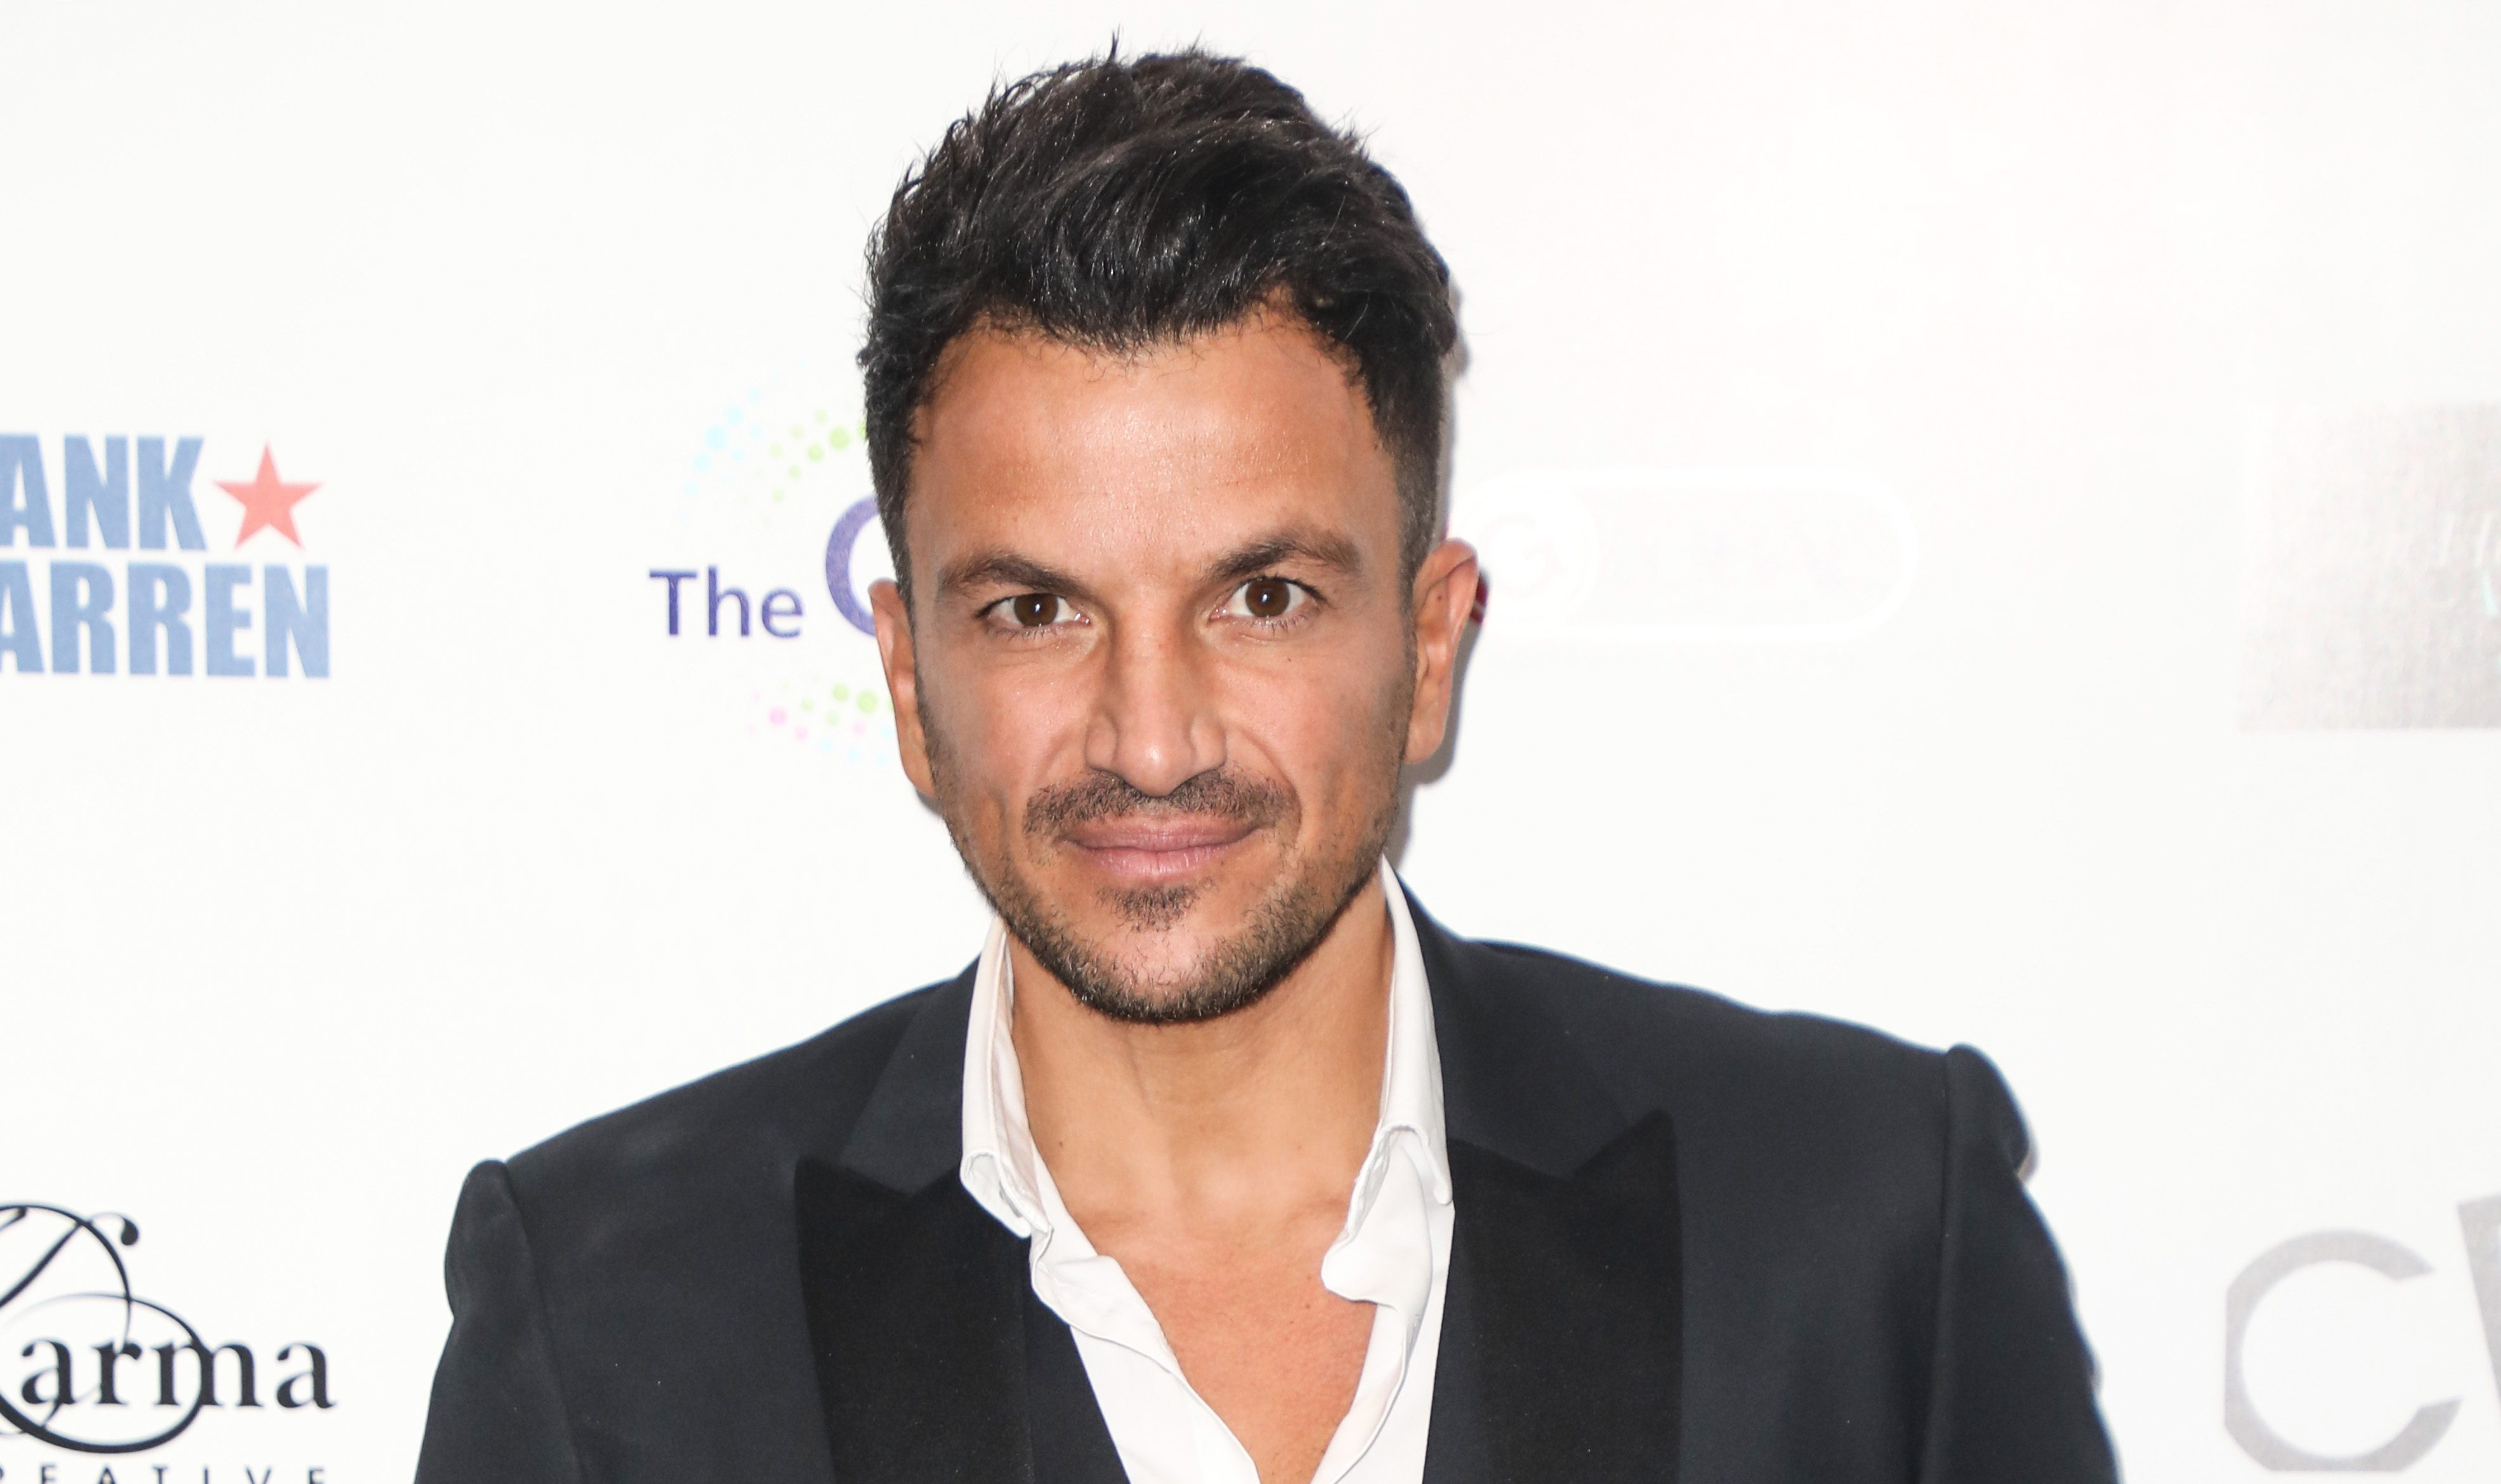 Peter Andre treats fans to glimpse of daughter Amelia as she plays hockey